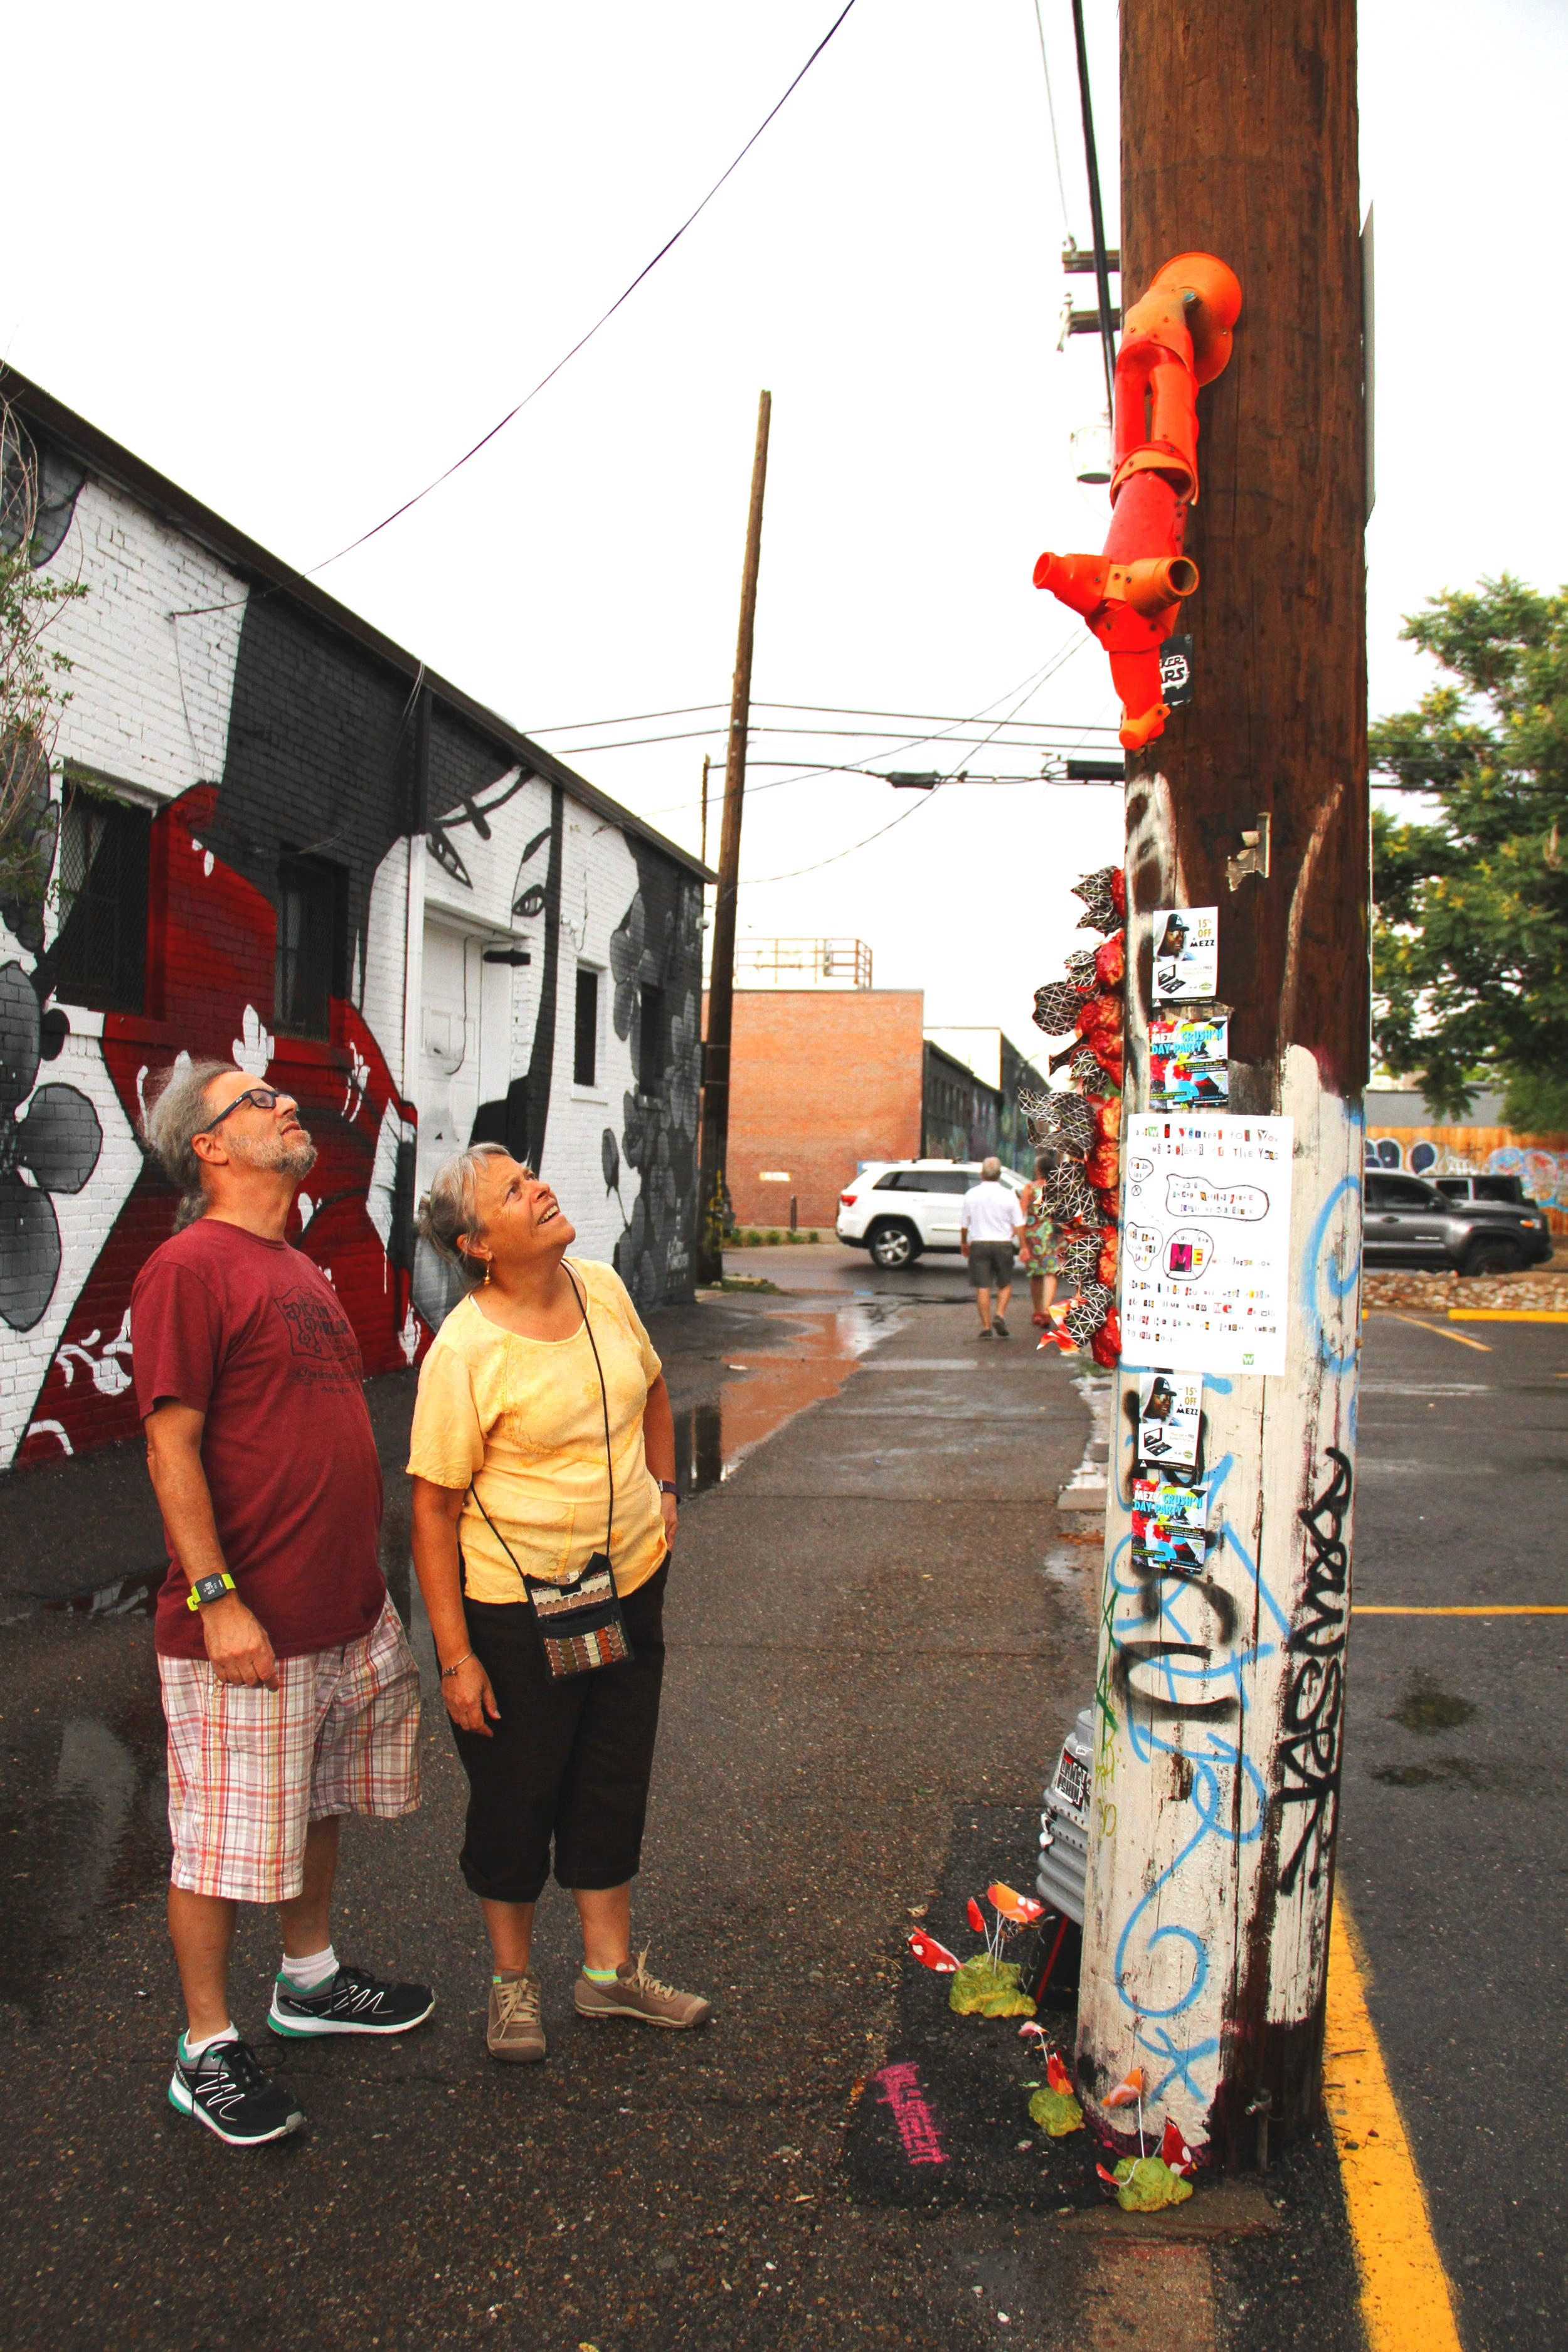 Sculptural pieces attached to electrical poles.